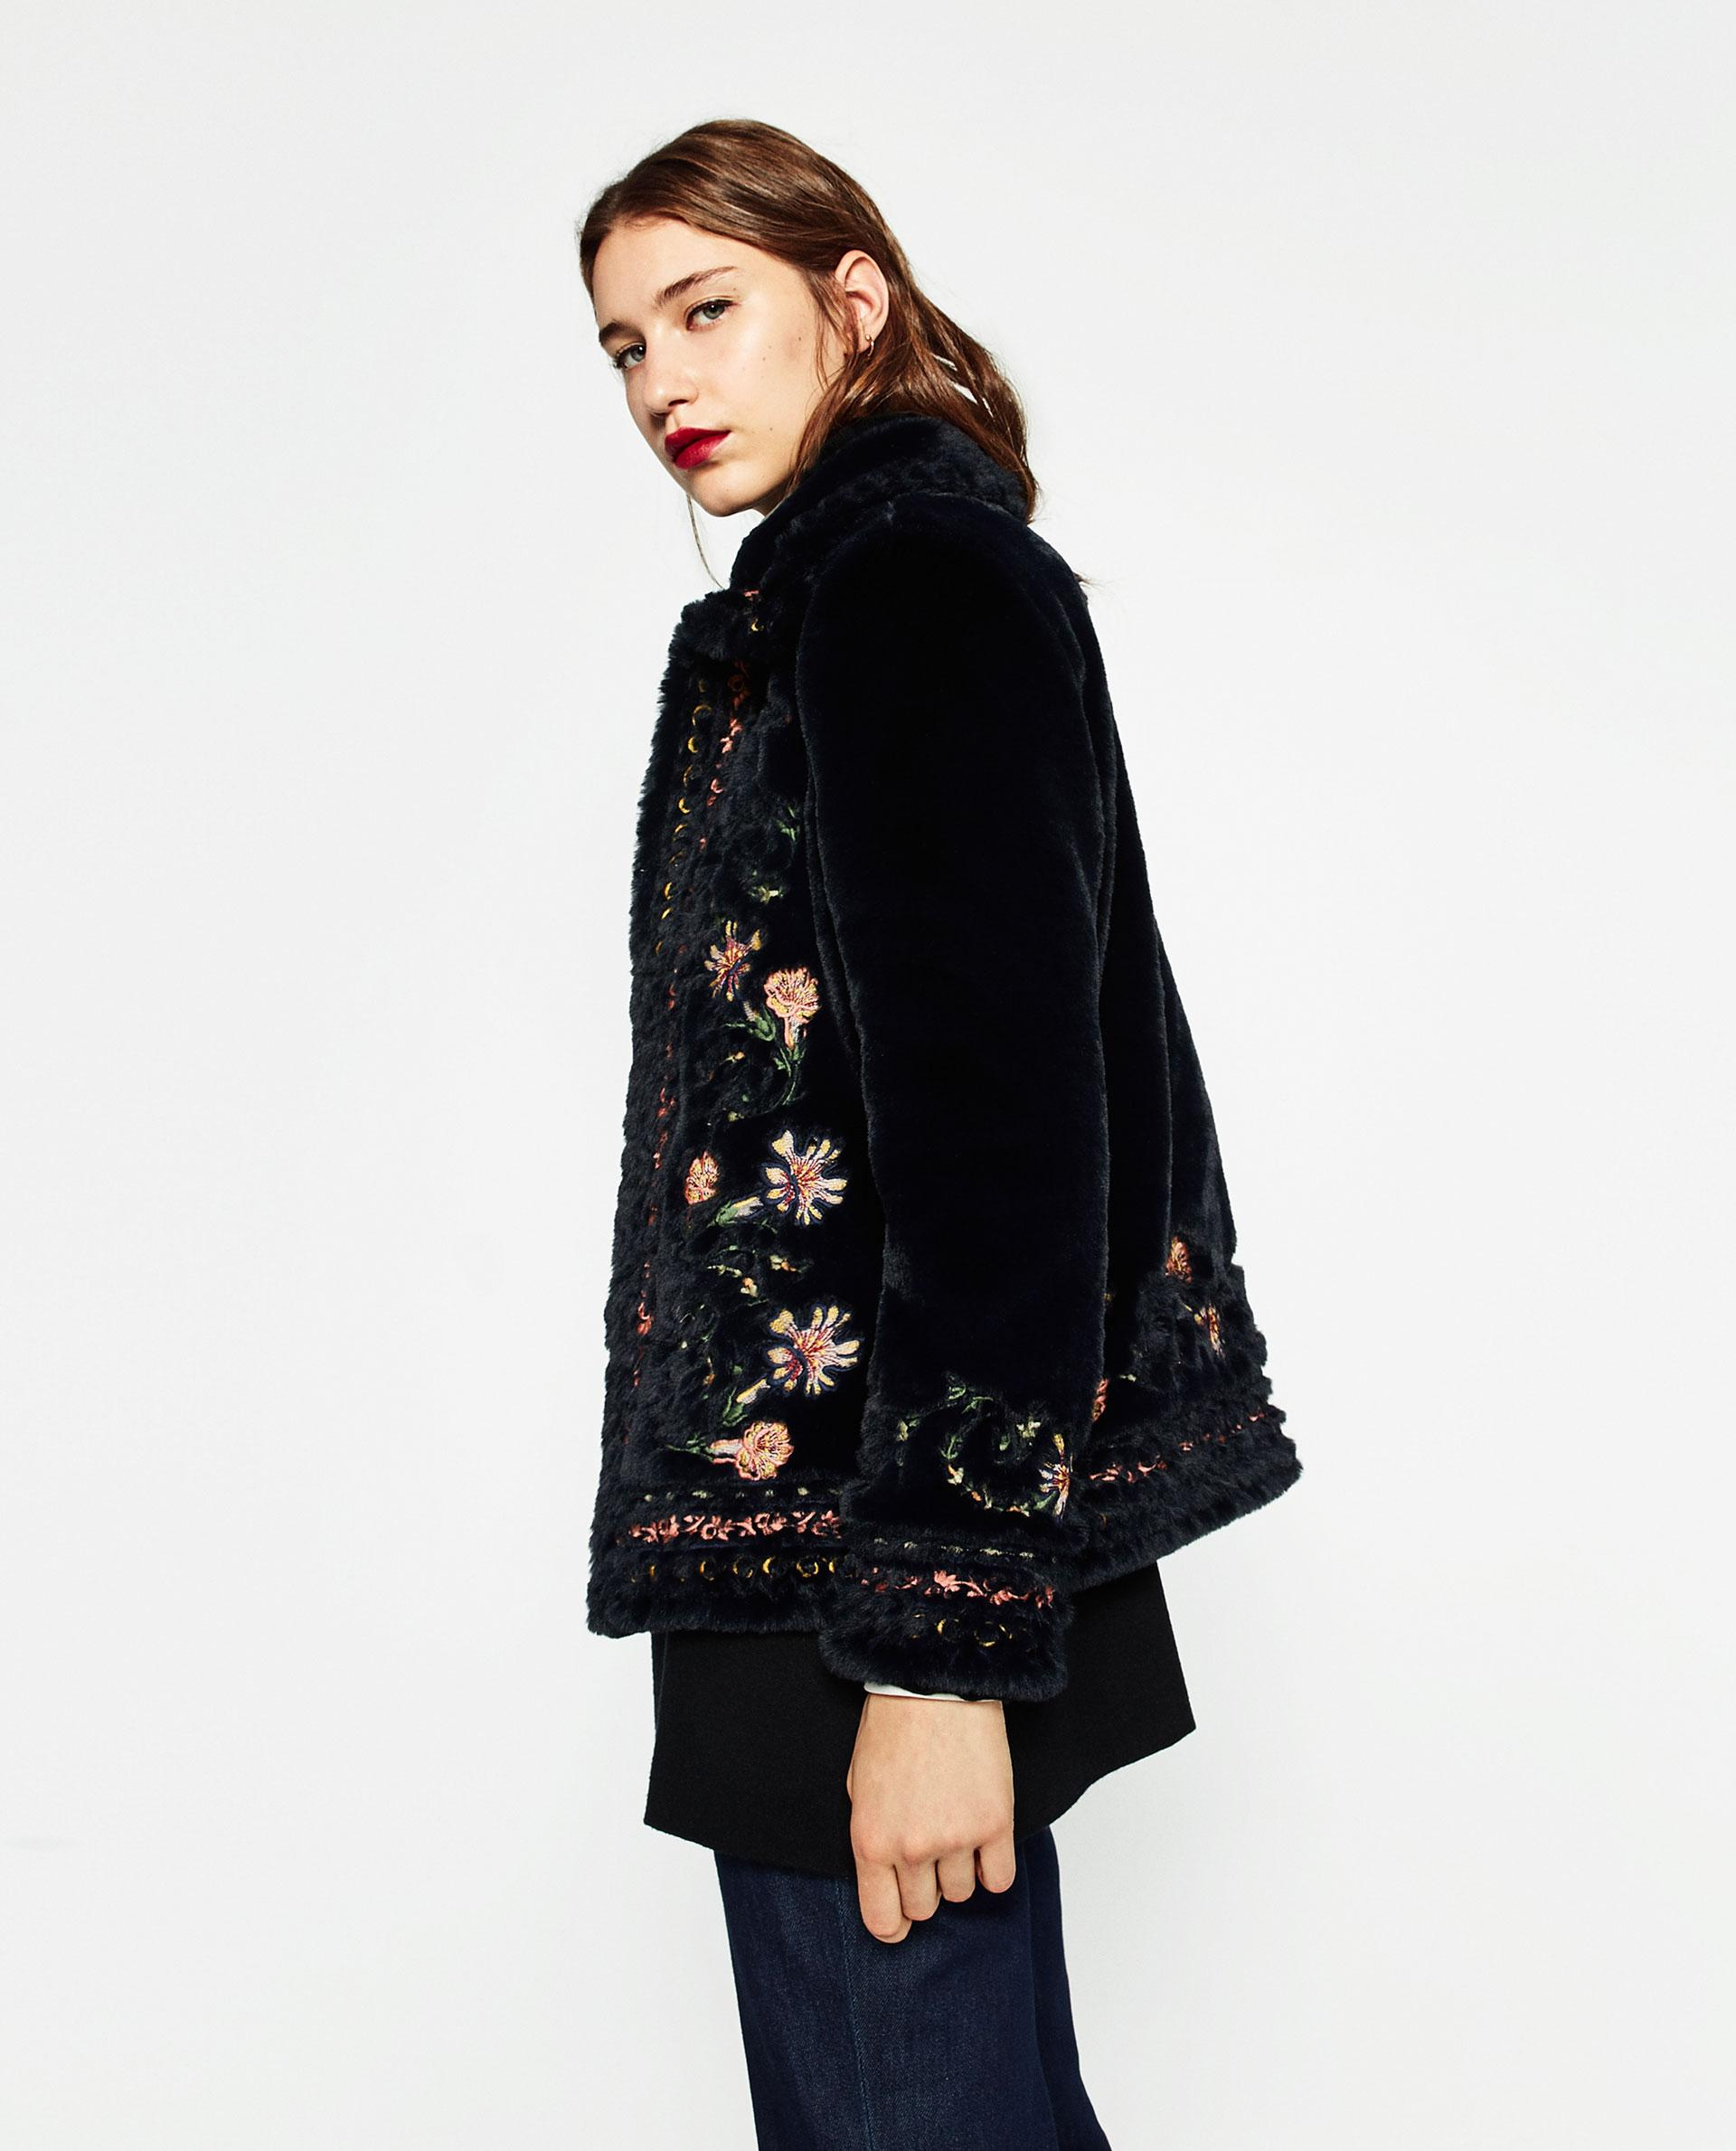 Zara New!!! Tags Embroidered Floral Faux Fur Jacket Fur Coat